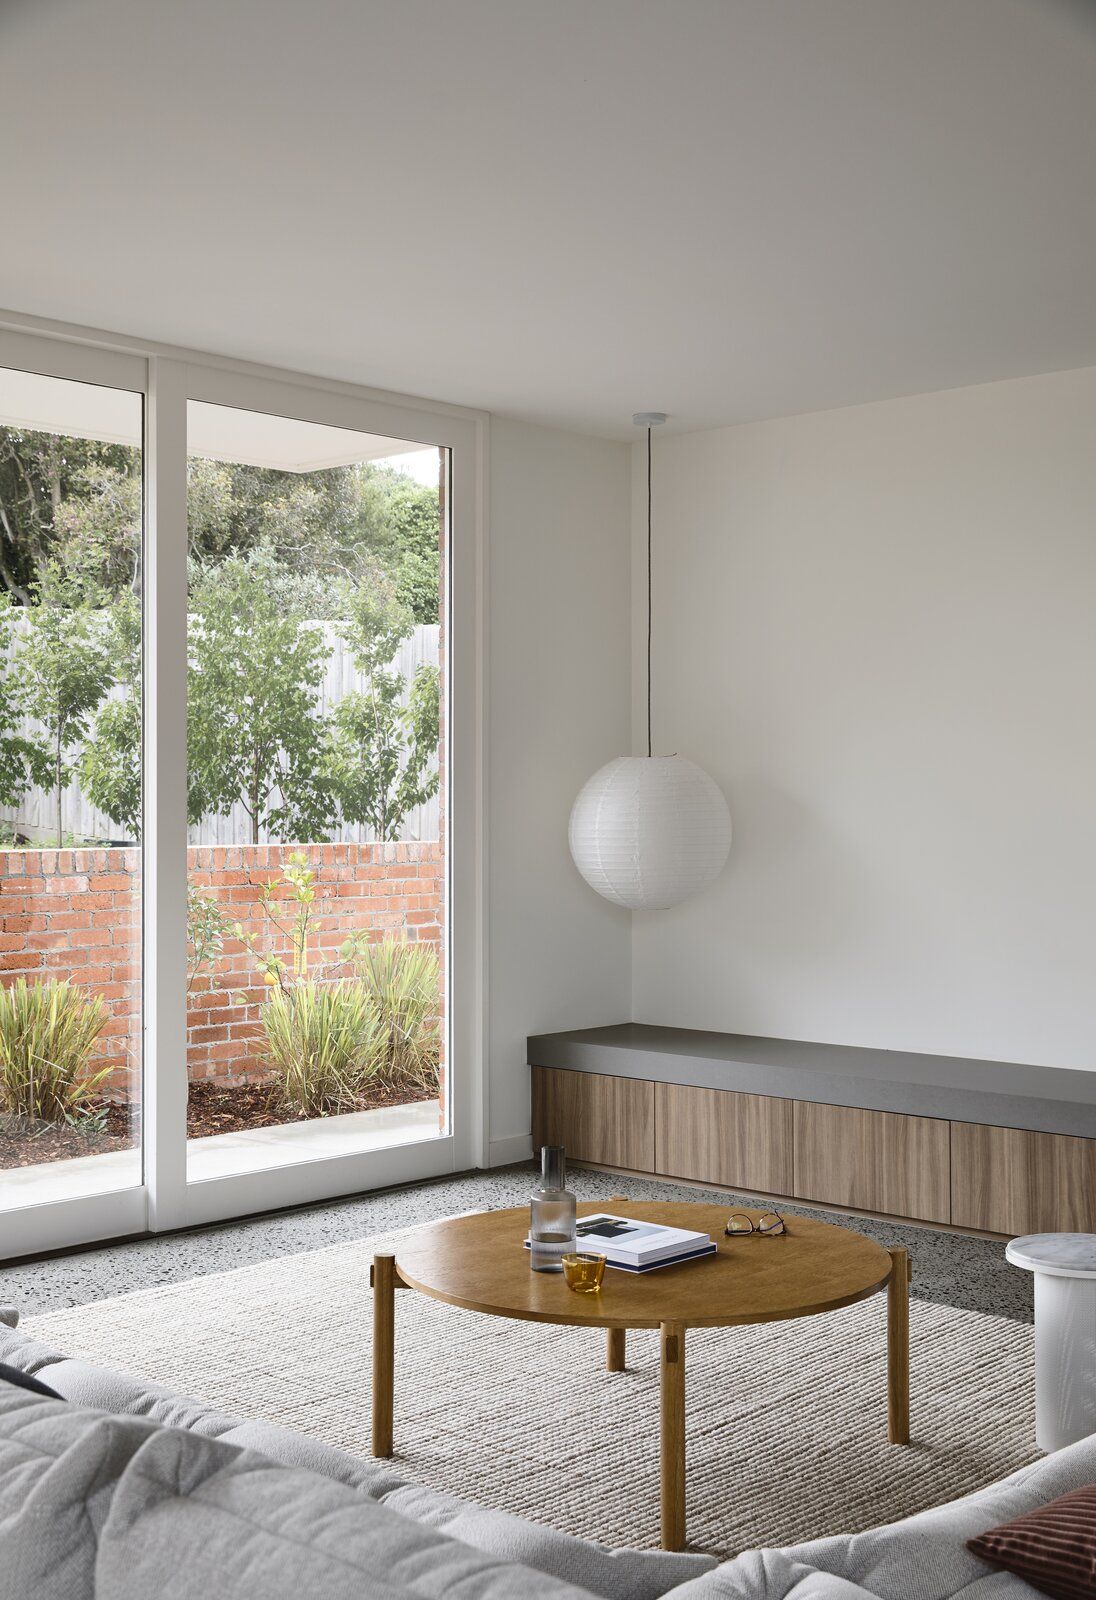 Photo 6 of 25 in This Melbourne Home Sits Pretty on a Slightly Sloped Site